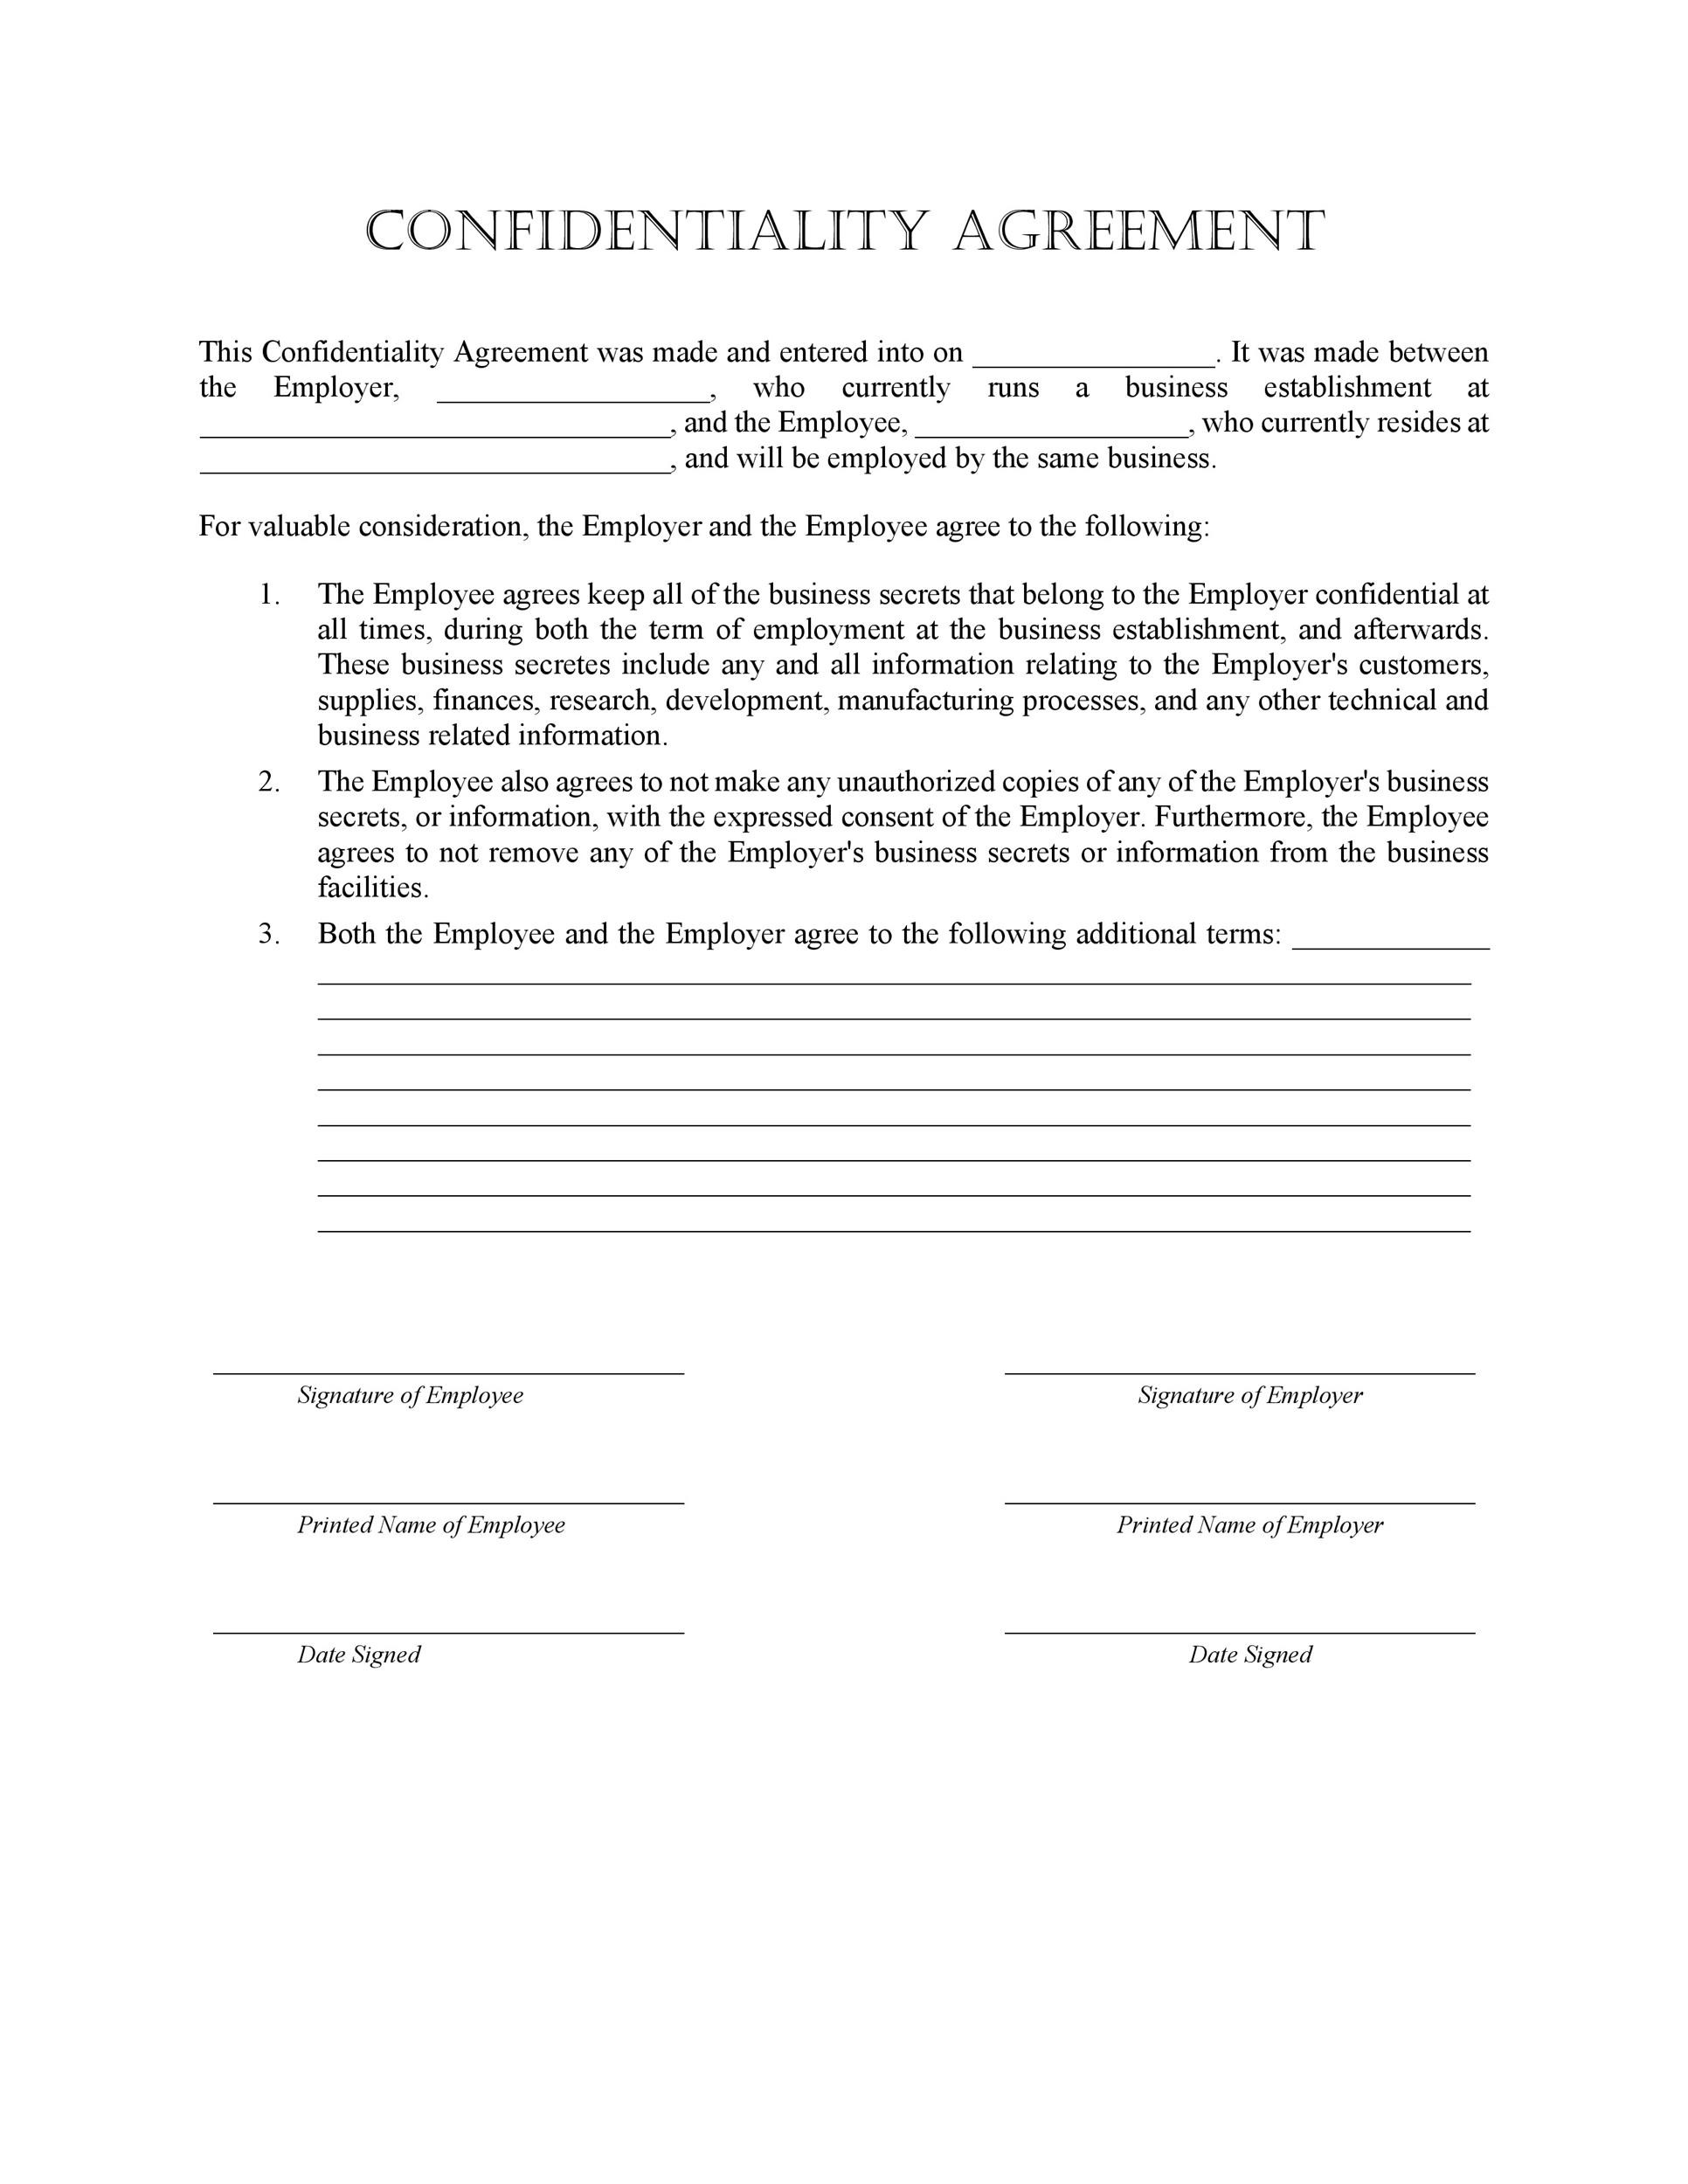 Non Disclosure Agreement Templates Samples Forms Template Lab - It confidentiality agreement template